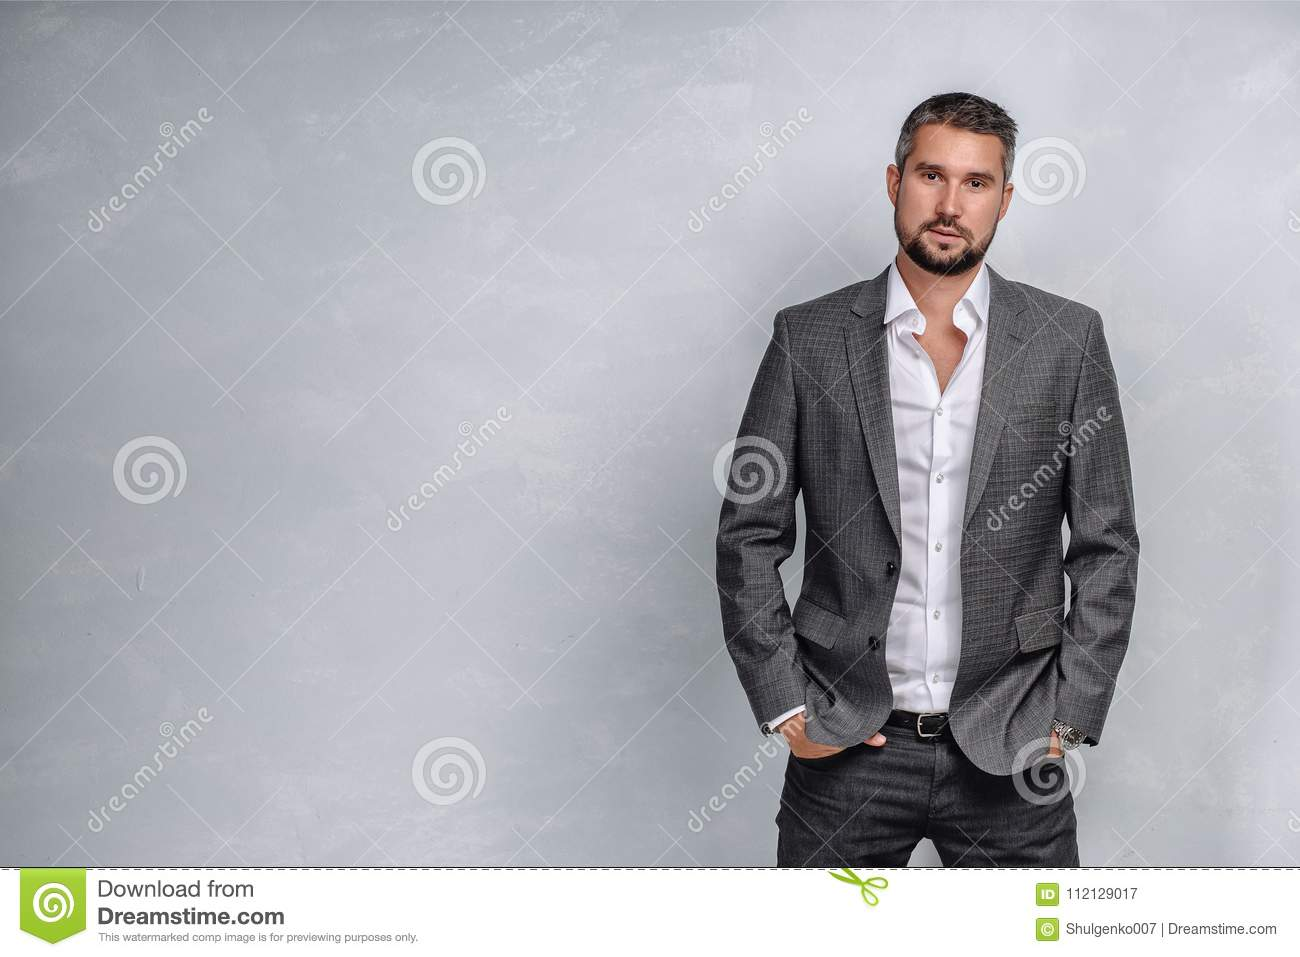 bf42d6829150 Serious CEO Stands On The Background Of A Clean Wall. Businessman In ...